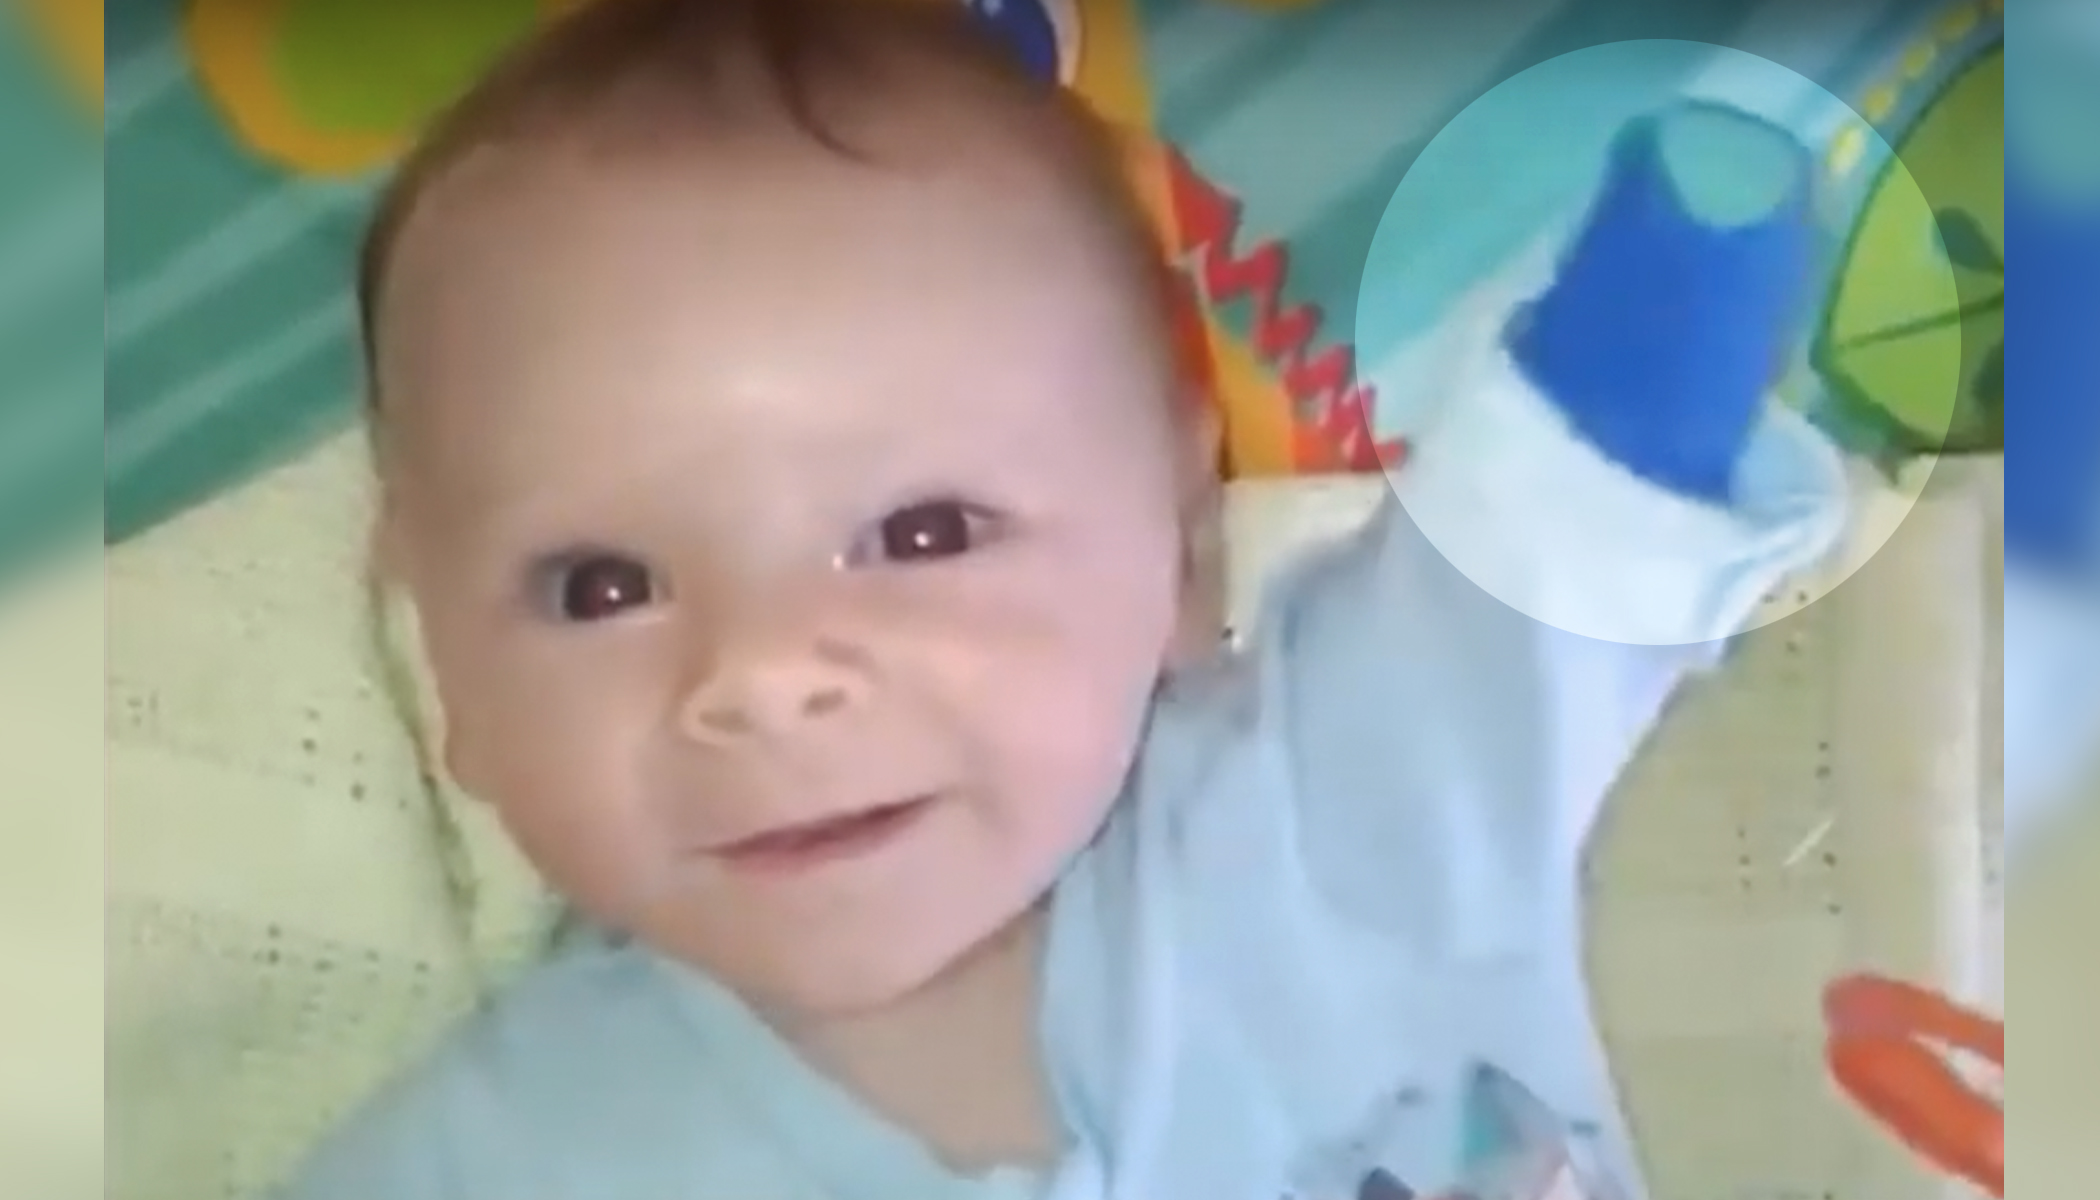 Baby's Arm Had to Be Amputated, So Dad Quit Job and Did an Unbelievable Thing